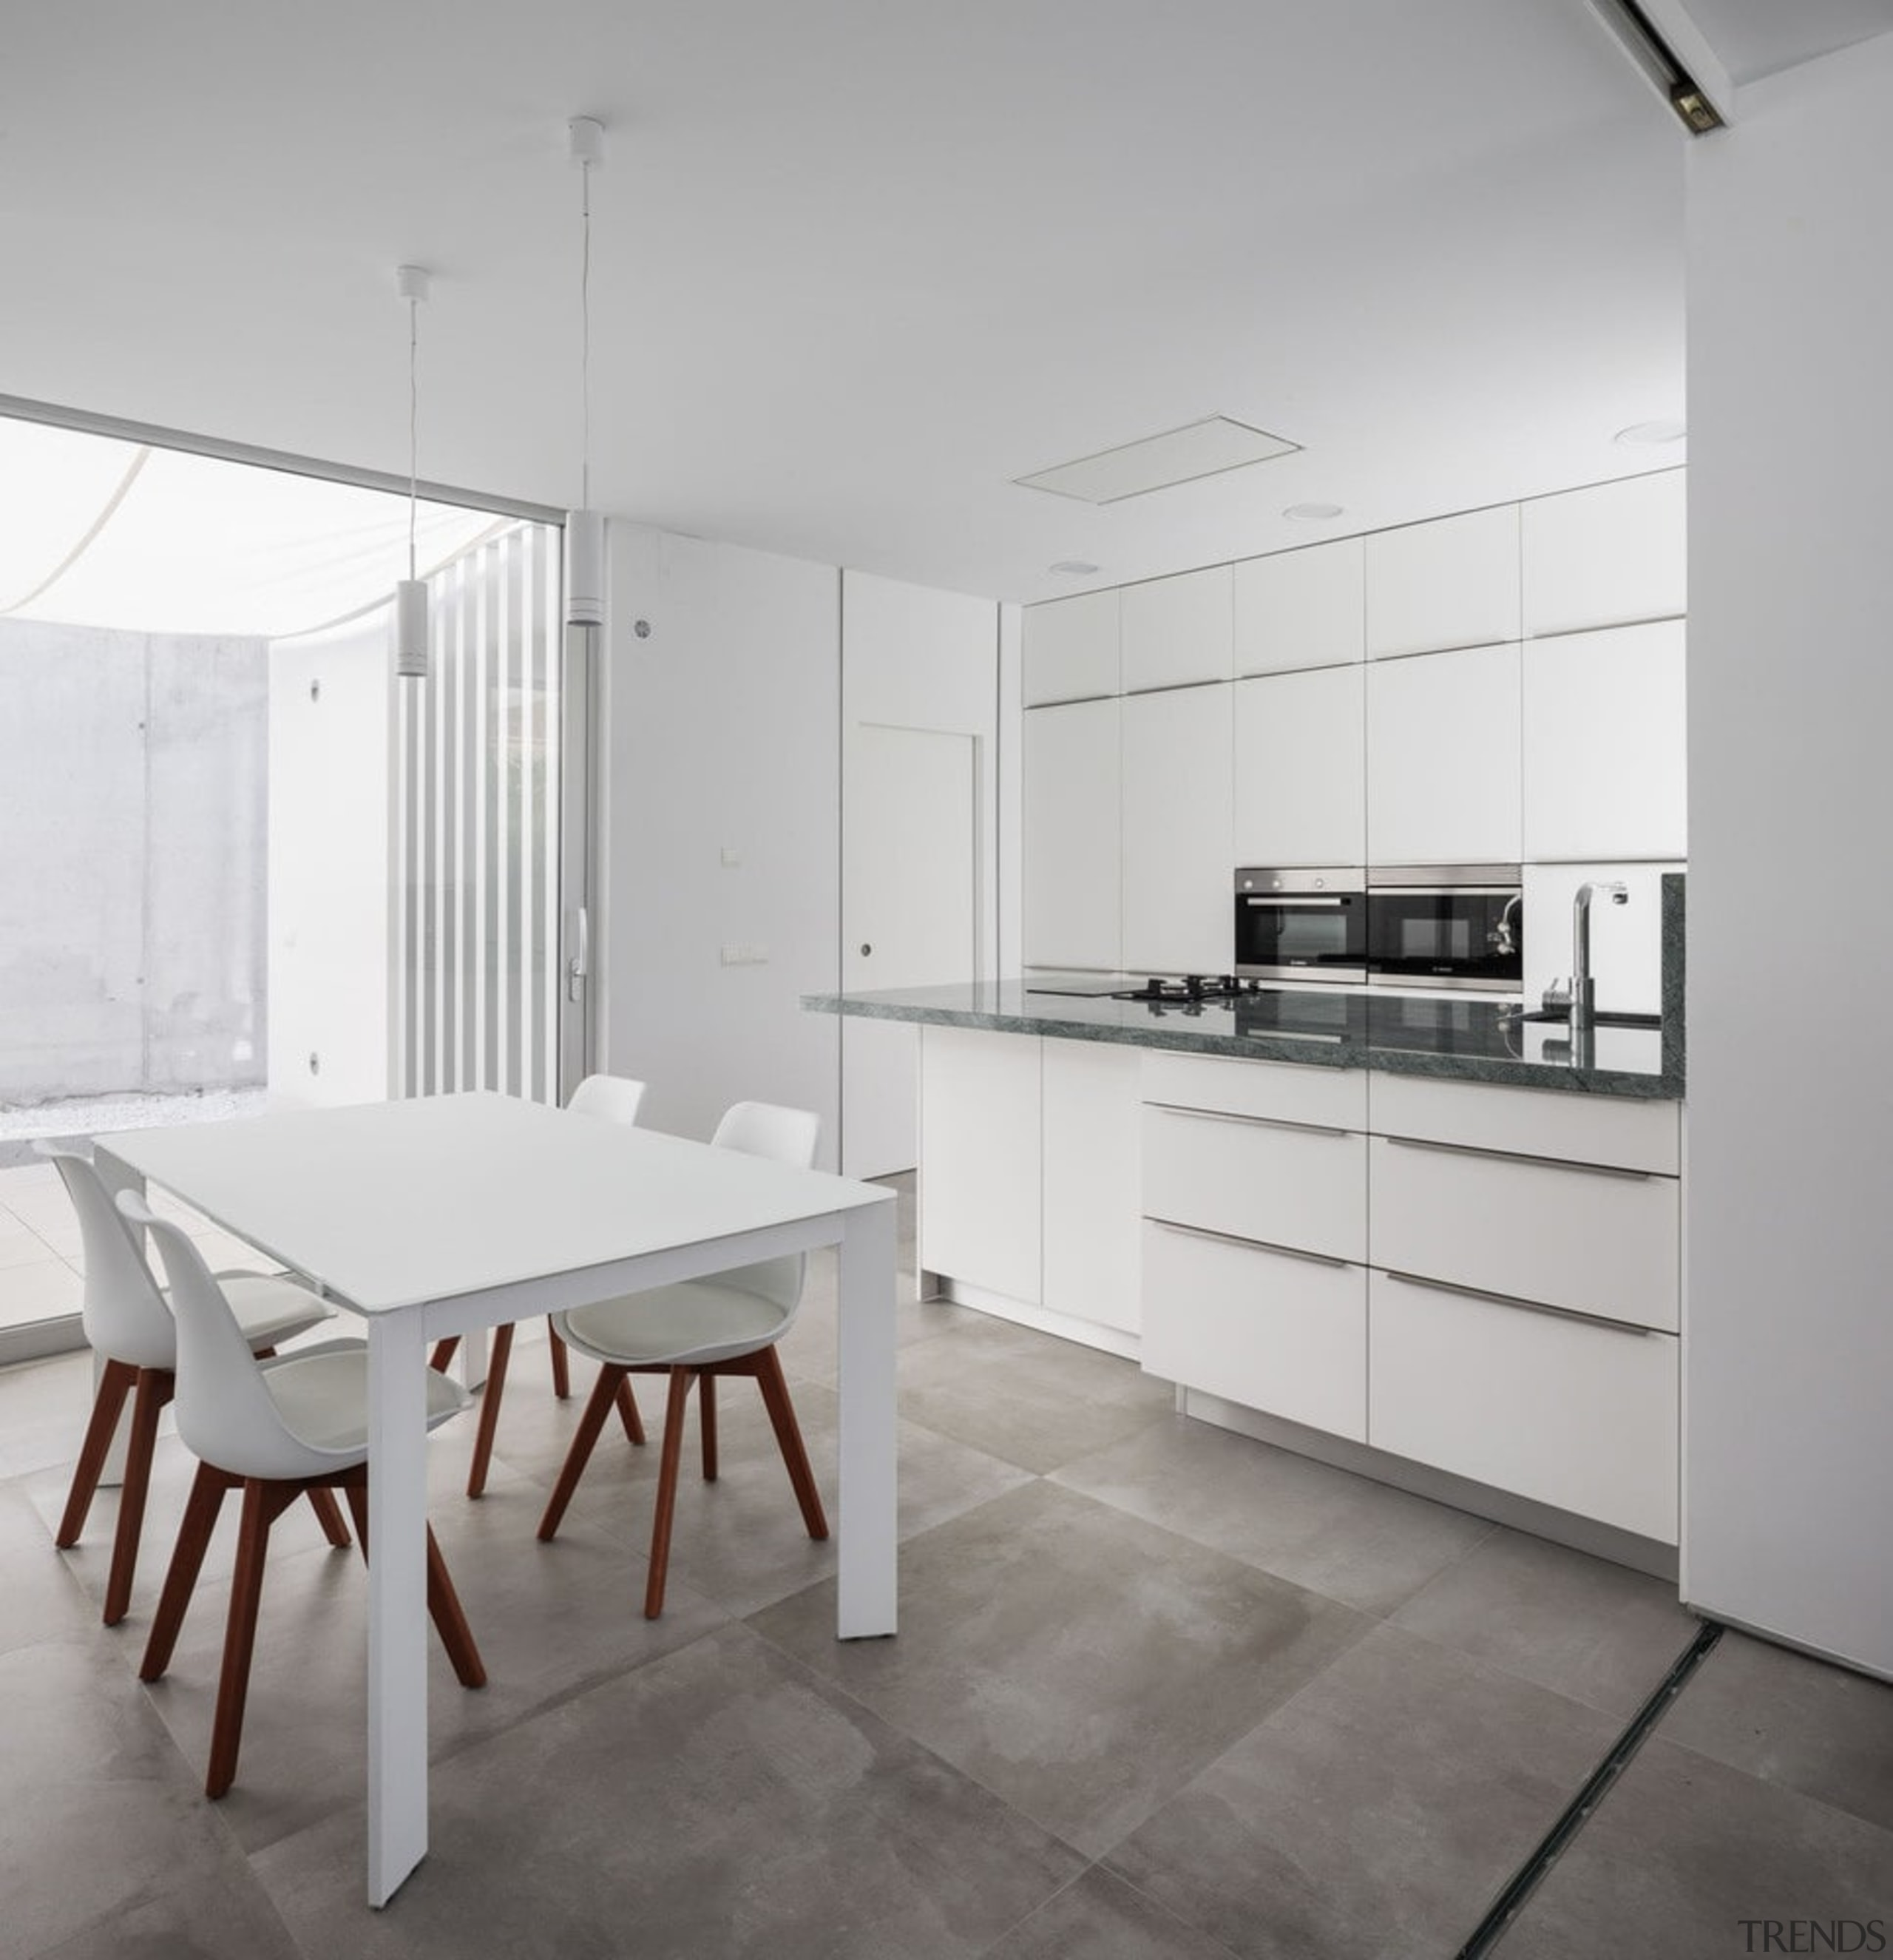 The kitchen features a similar white aesthetic found architecture, countertop, floor, flooring, interior design, kitchen, table, gray